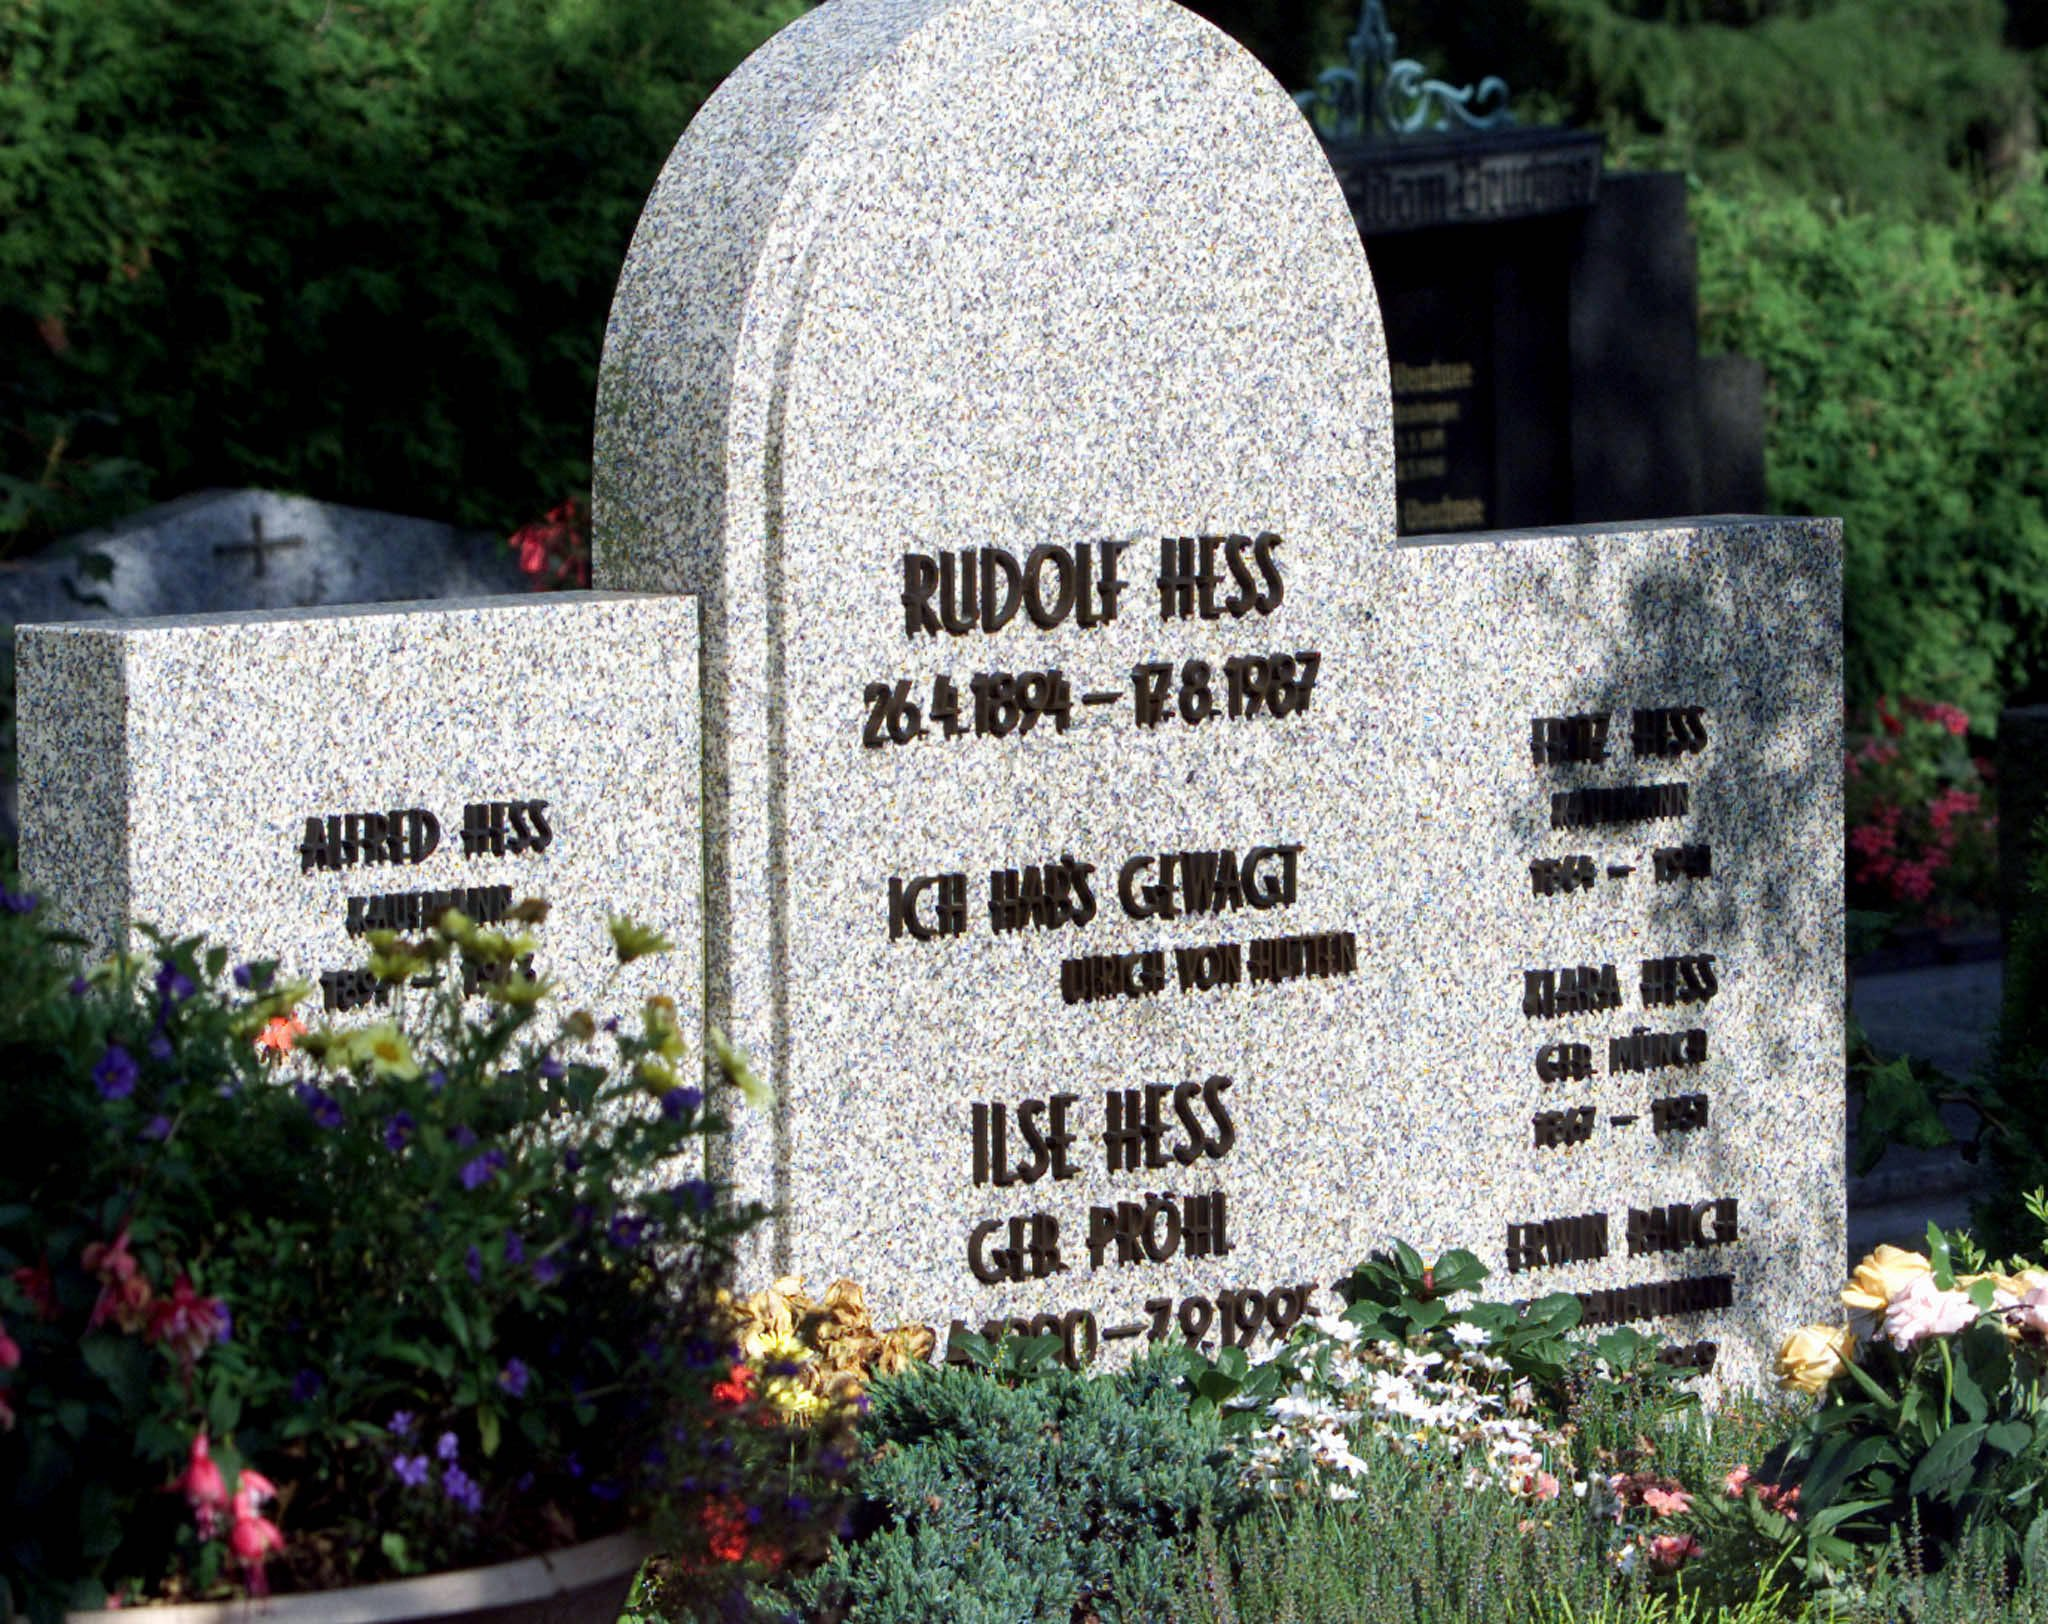 The grave of Adolf Hitler's deputy Rudolf Hess is seen in Wunsiedel in this August 16, 2000 file picture. The grave of Hess, the last member of Hitler's cabinet to have died, has been re-opened and his remains have been removed for cremation, German media reported July 21, 2011. His ashes will be buried at sea at a later stage to stop future neo Nazi demonstrations around the anniversary of Hess' death. REUTERS/Michael Dalder/Files   (GERMANY - Tags: POLITICS SOCIETY)